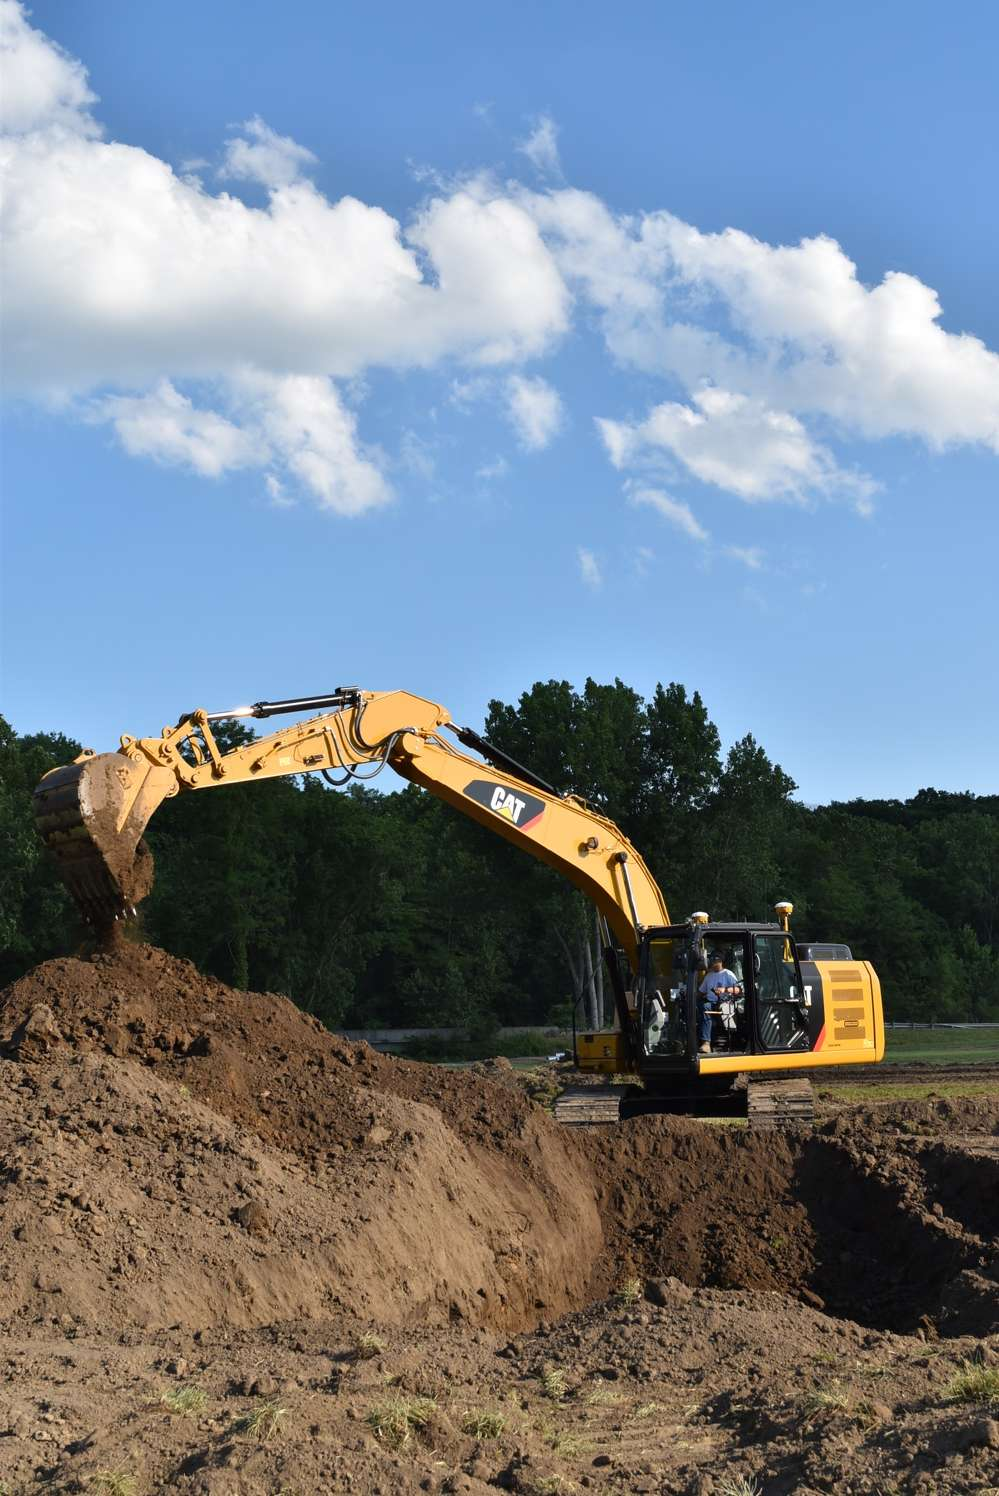 An attendee demos a 323FL hydraulic excavator with grade assist.